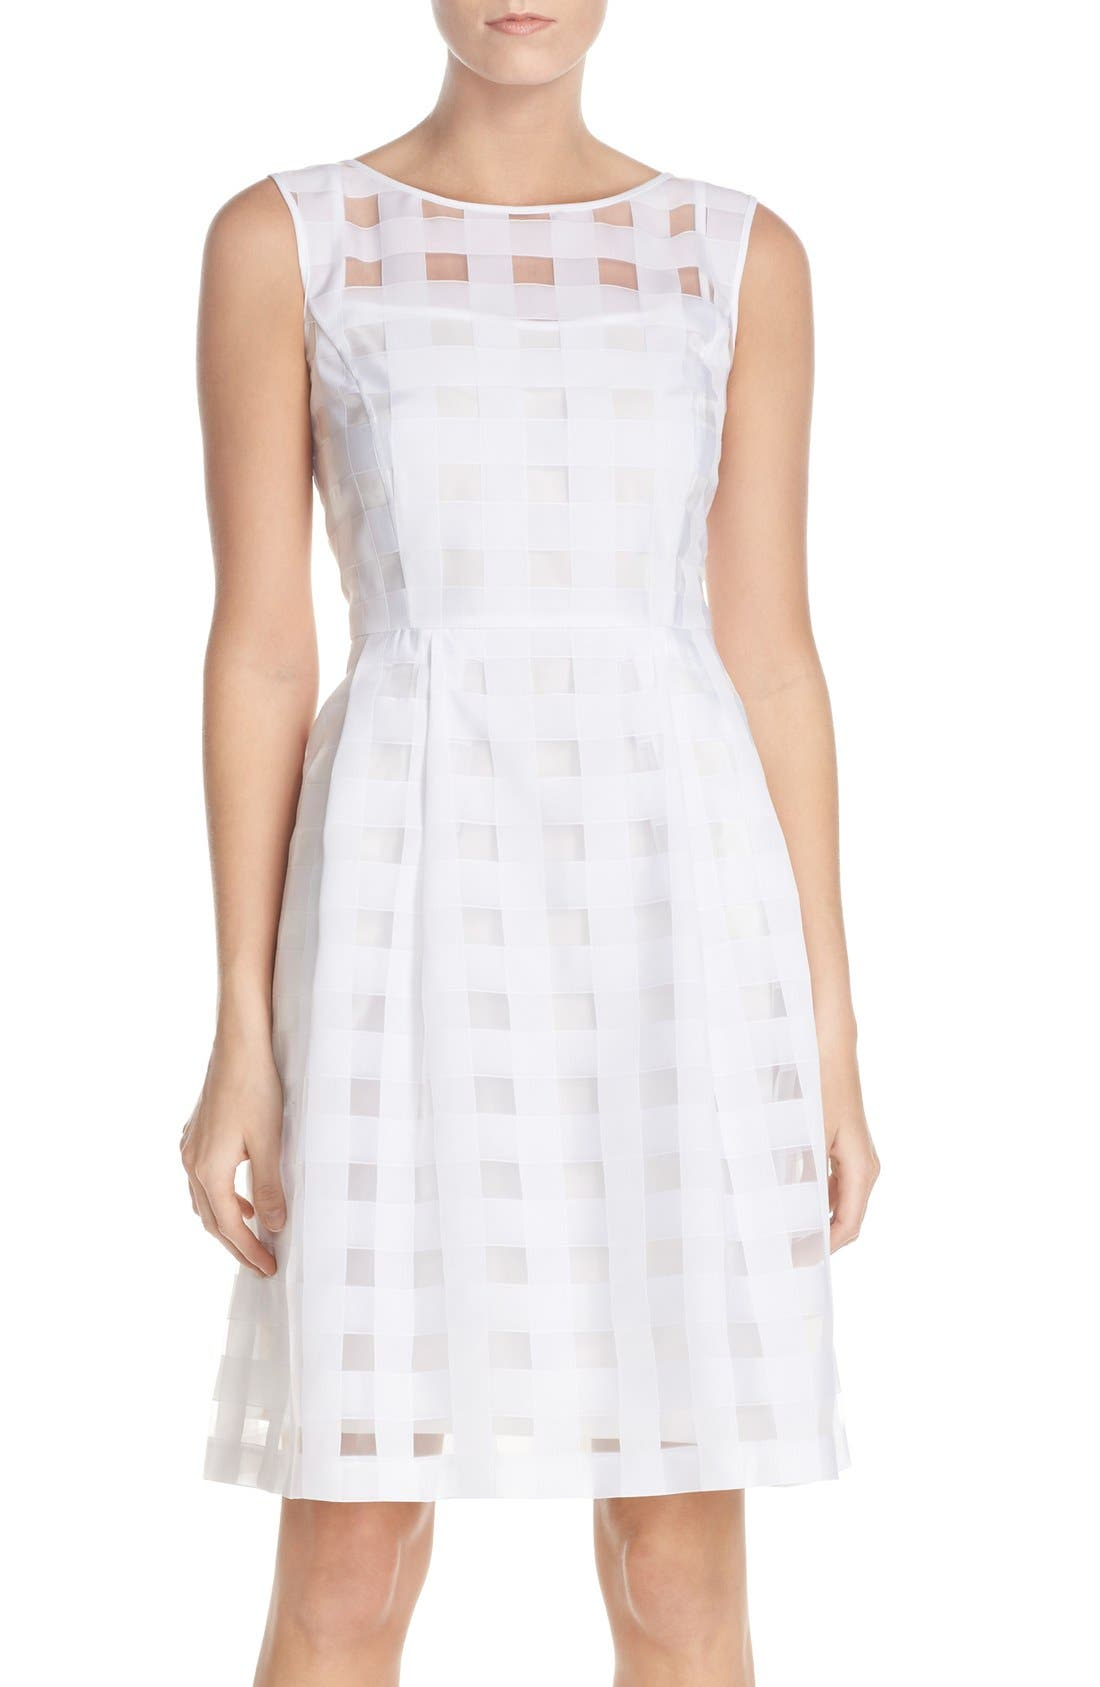 ELLEN TRACY Windowpane Check Fit & Flare Dress